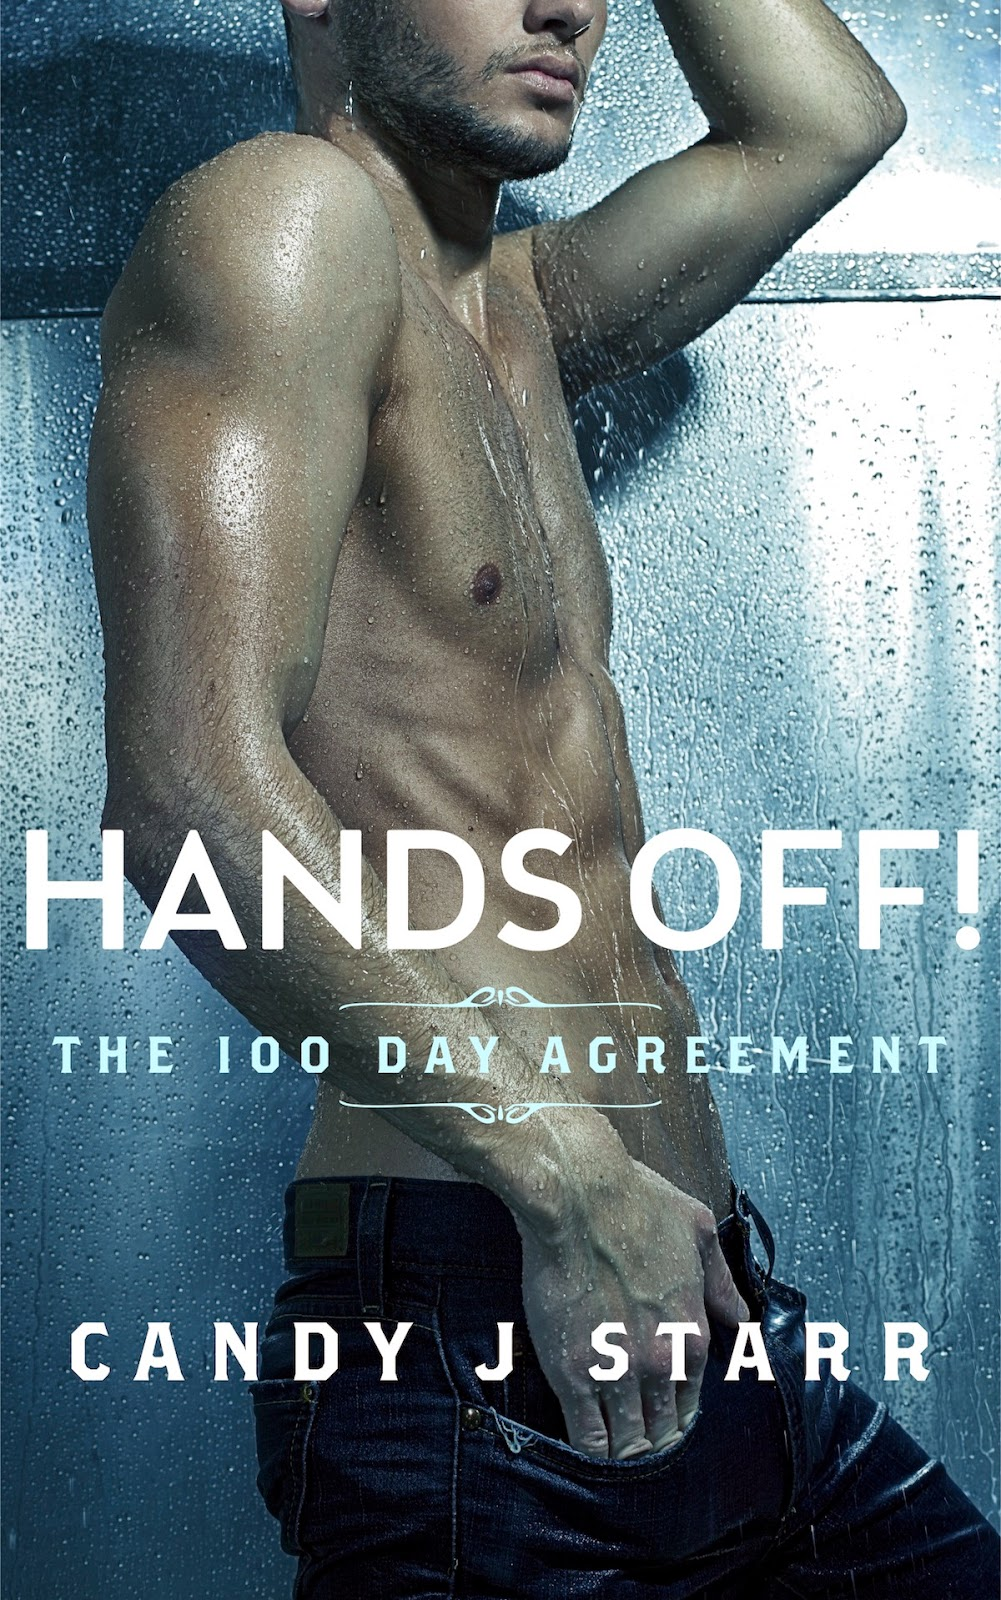 Hands Off! The 100 Day Agreement by Candy J. Starr